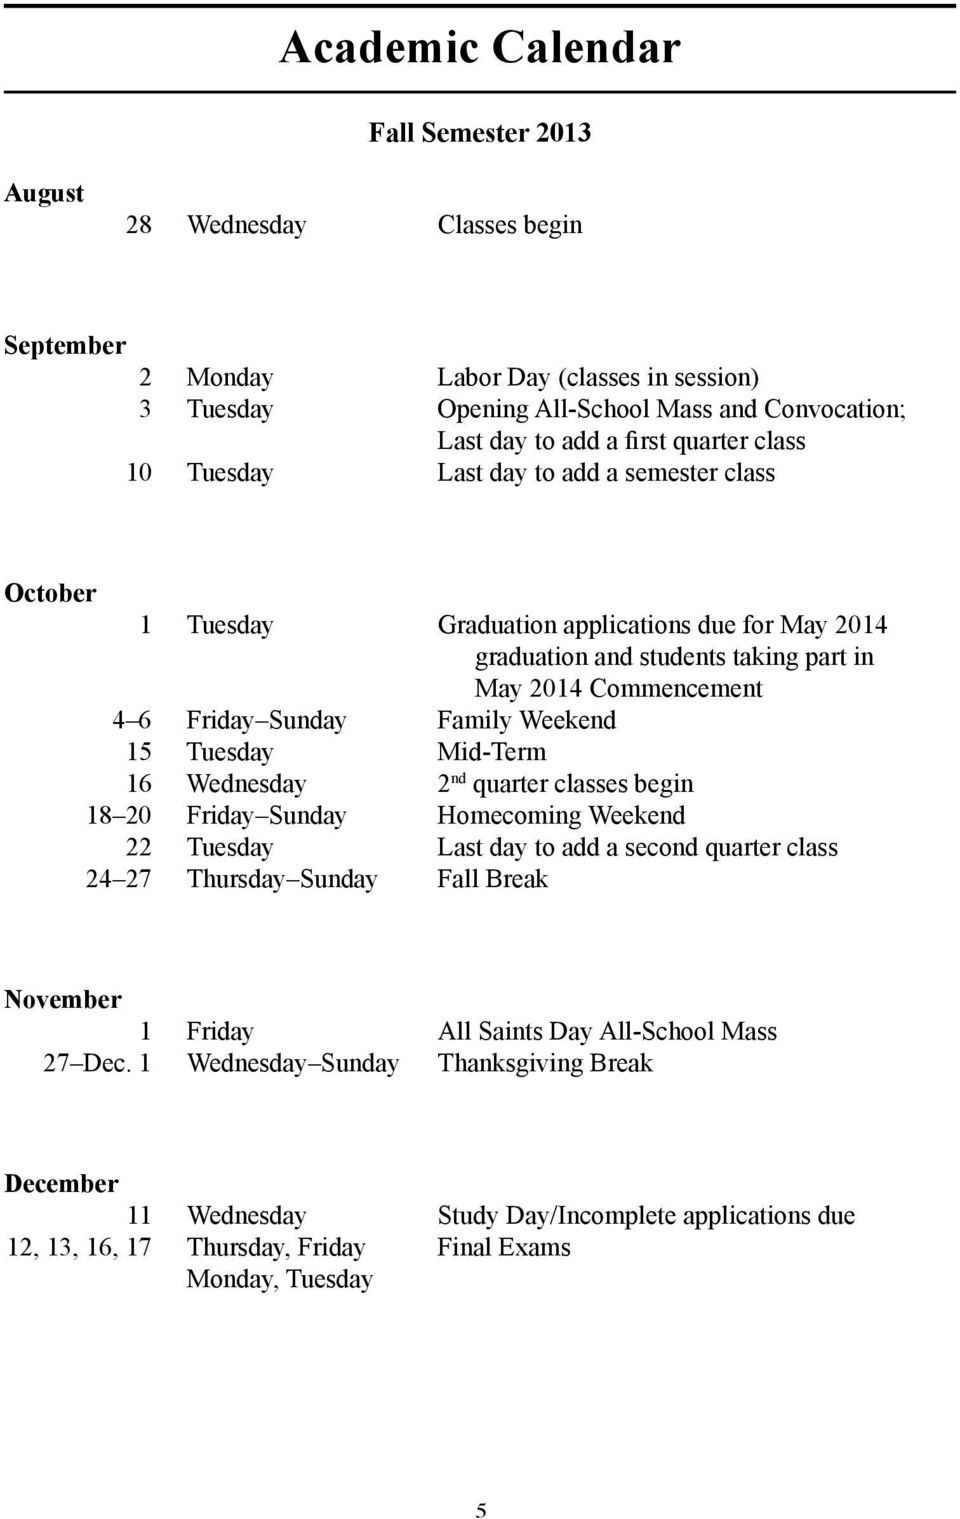 Family Weekend 15 Tuesday Mid-Term 16 Wednesday 2 nd quarter classes begin 18 20 Friday Sunday Homecoming Weekend 22 Tuesday Last day to add a second quarter class 24 27 Thursday Sunday Fall Break